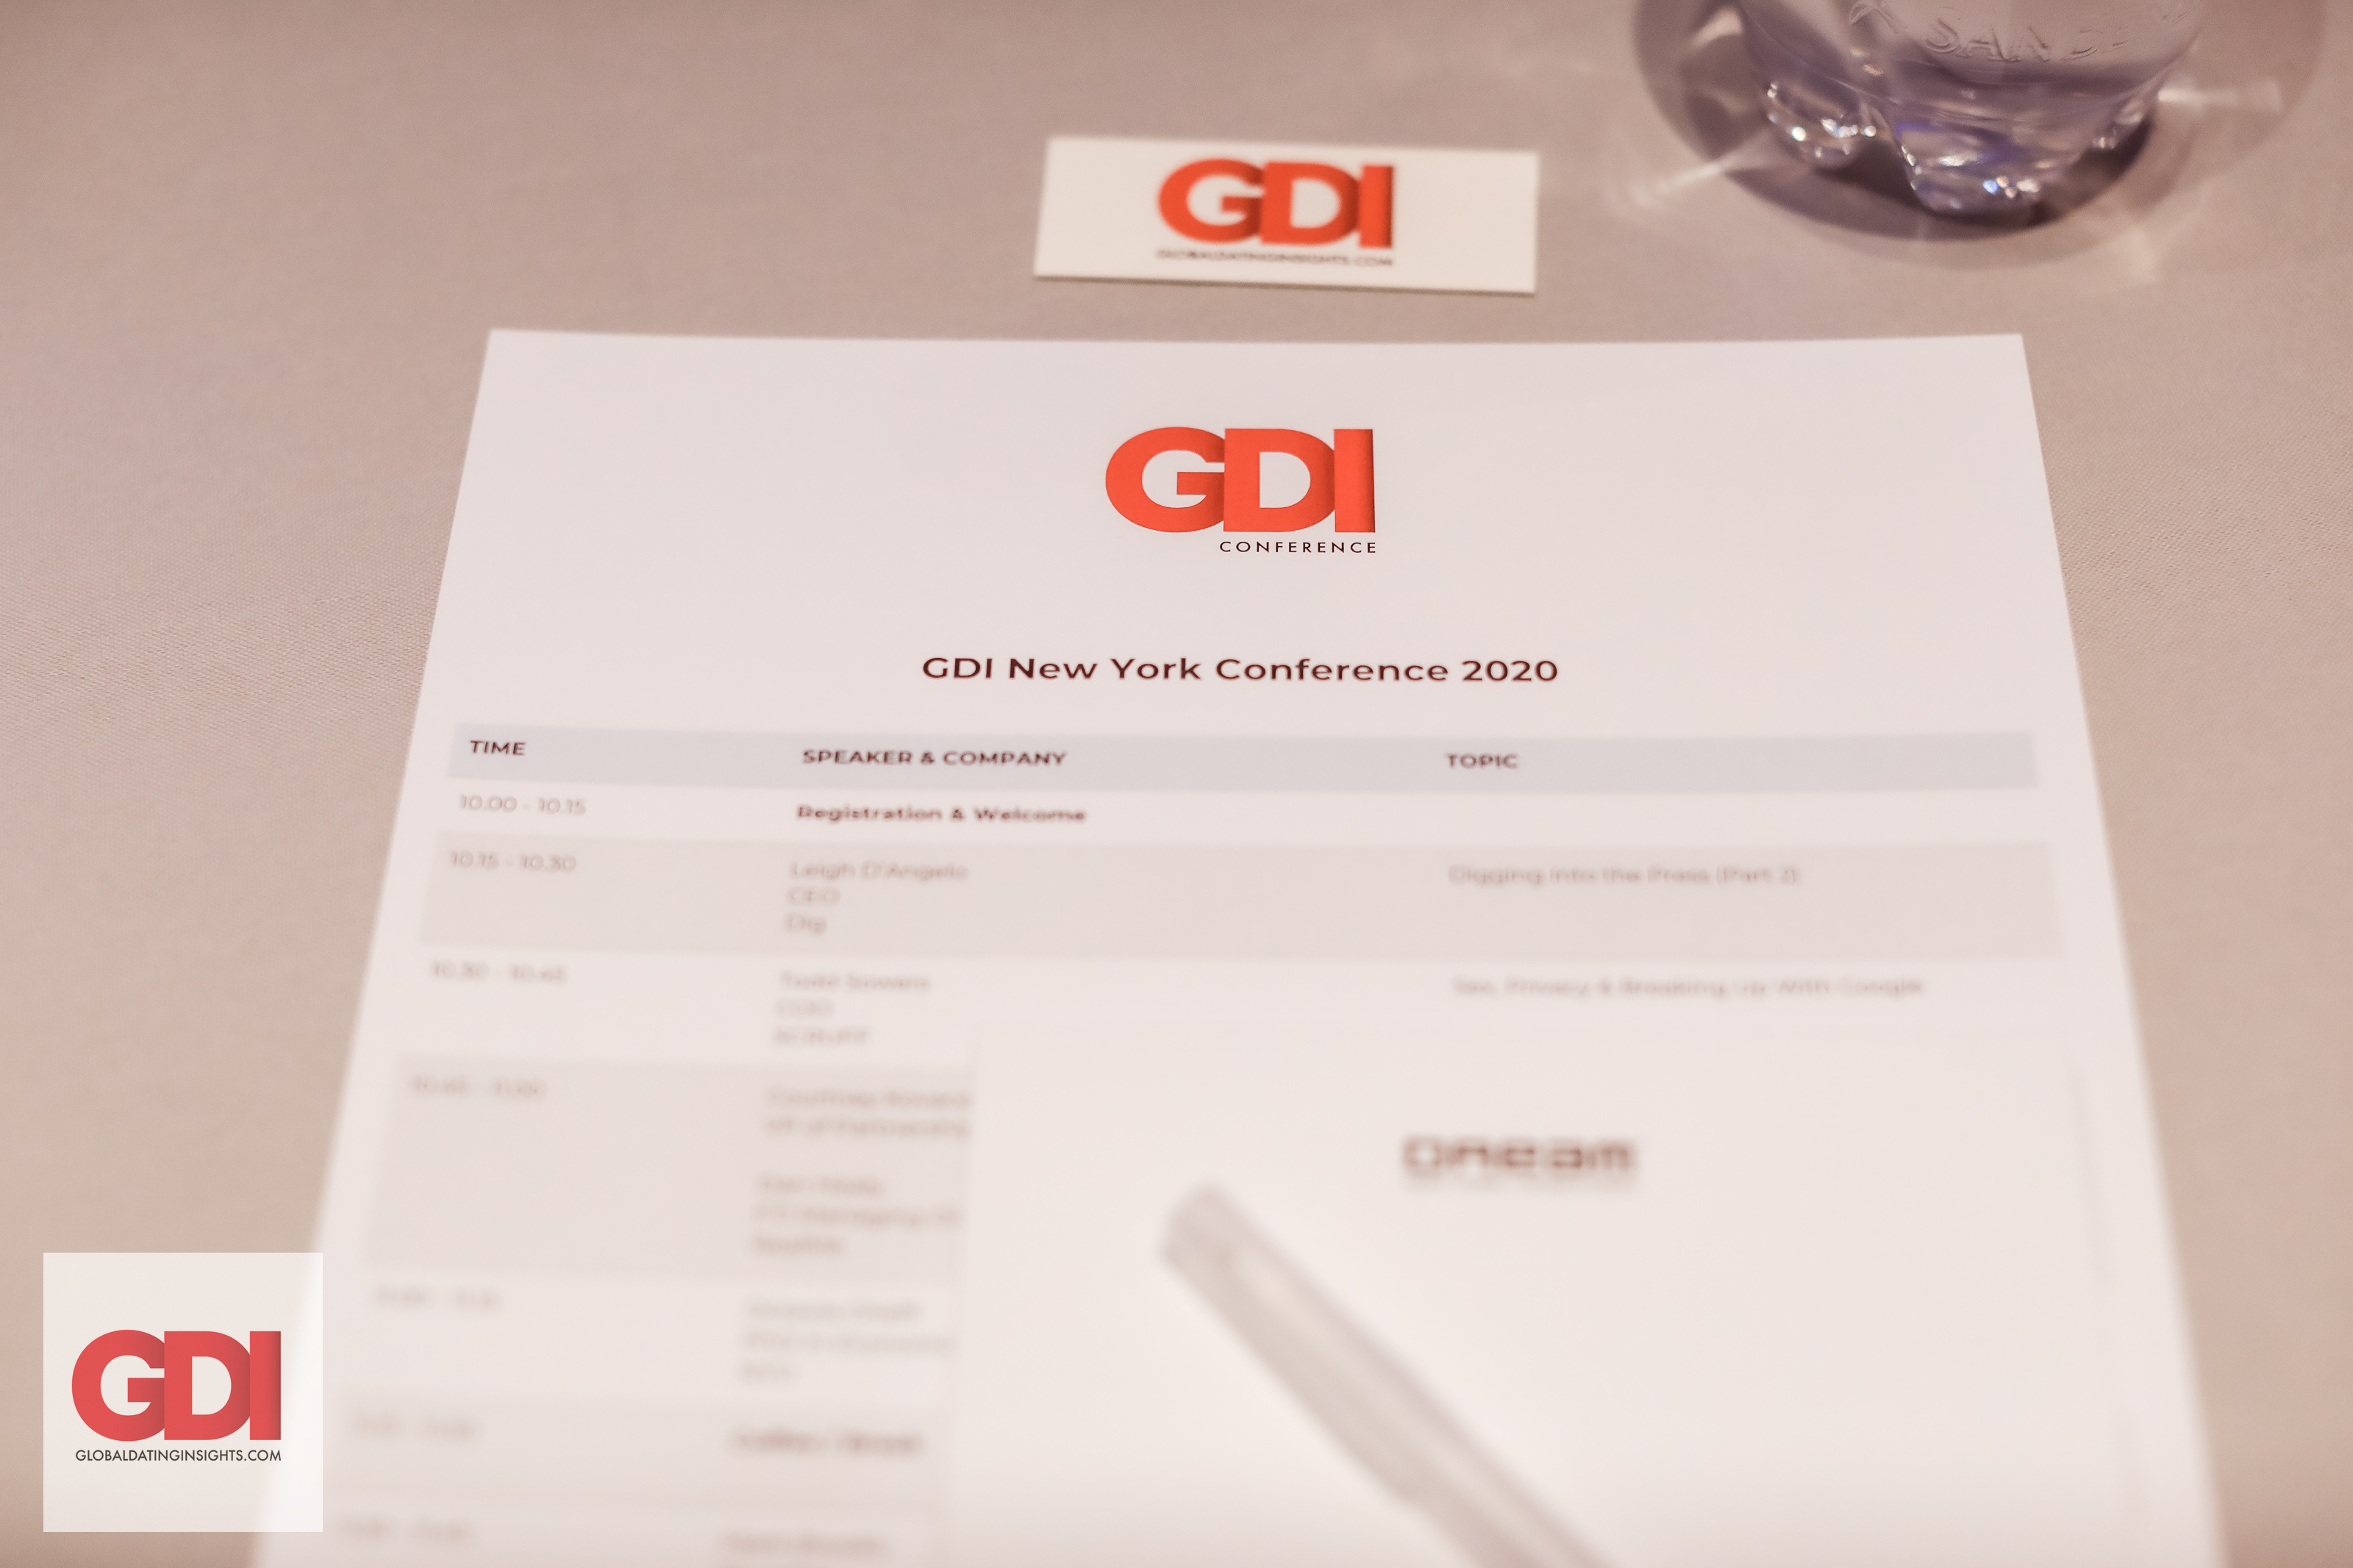 GDI Singapore and Los Angeles Conferences Postponed